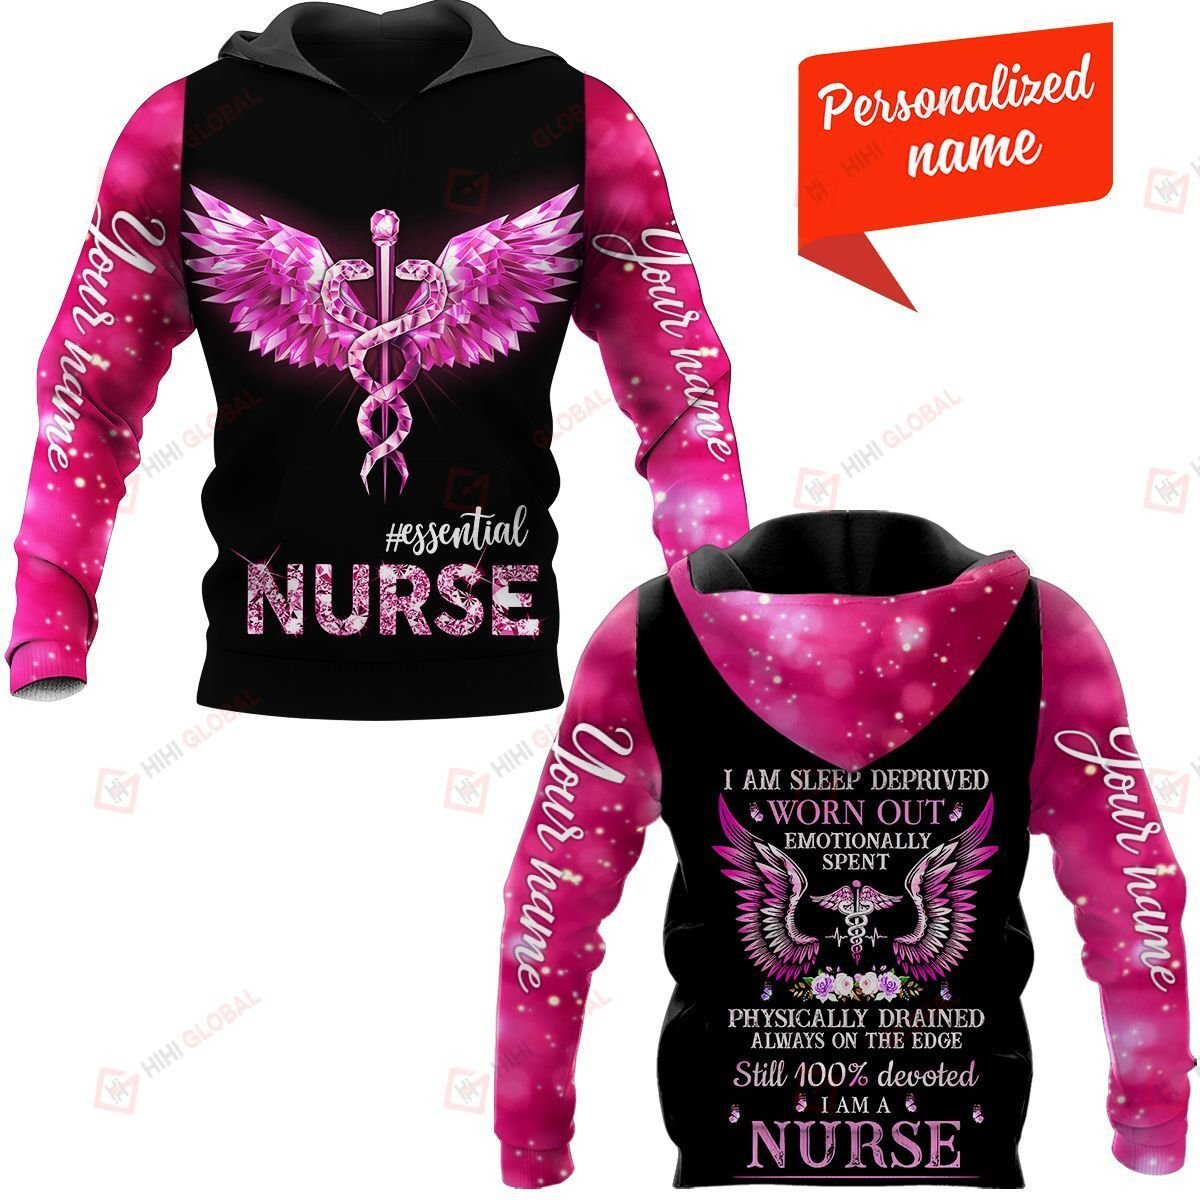 I Am Sleep Deprived Worn Out Emotionally Spent Physically Drained Always On The Edge Still 100% Devoted I Am A Nurse Personalized ALL OVER PRINTED SHIRTS